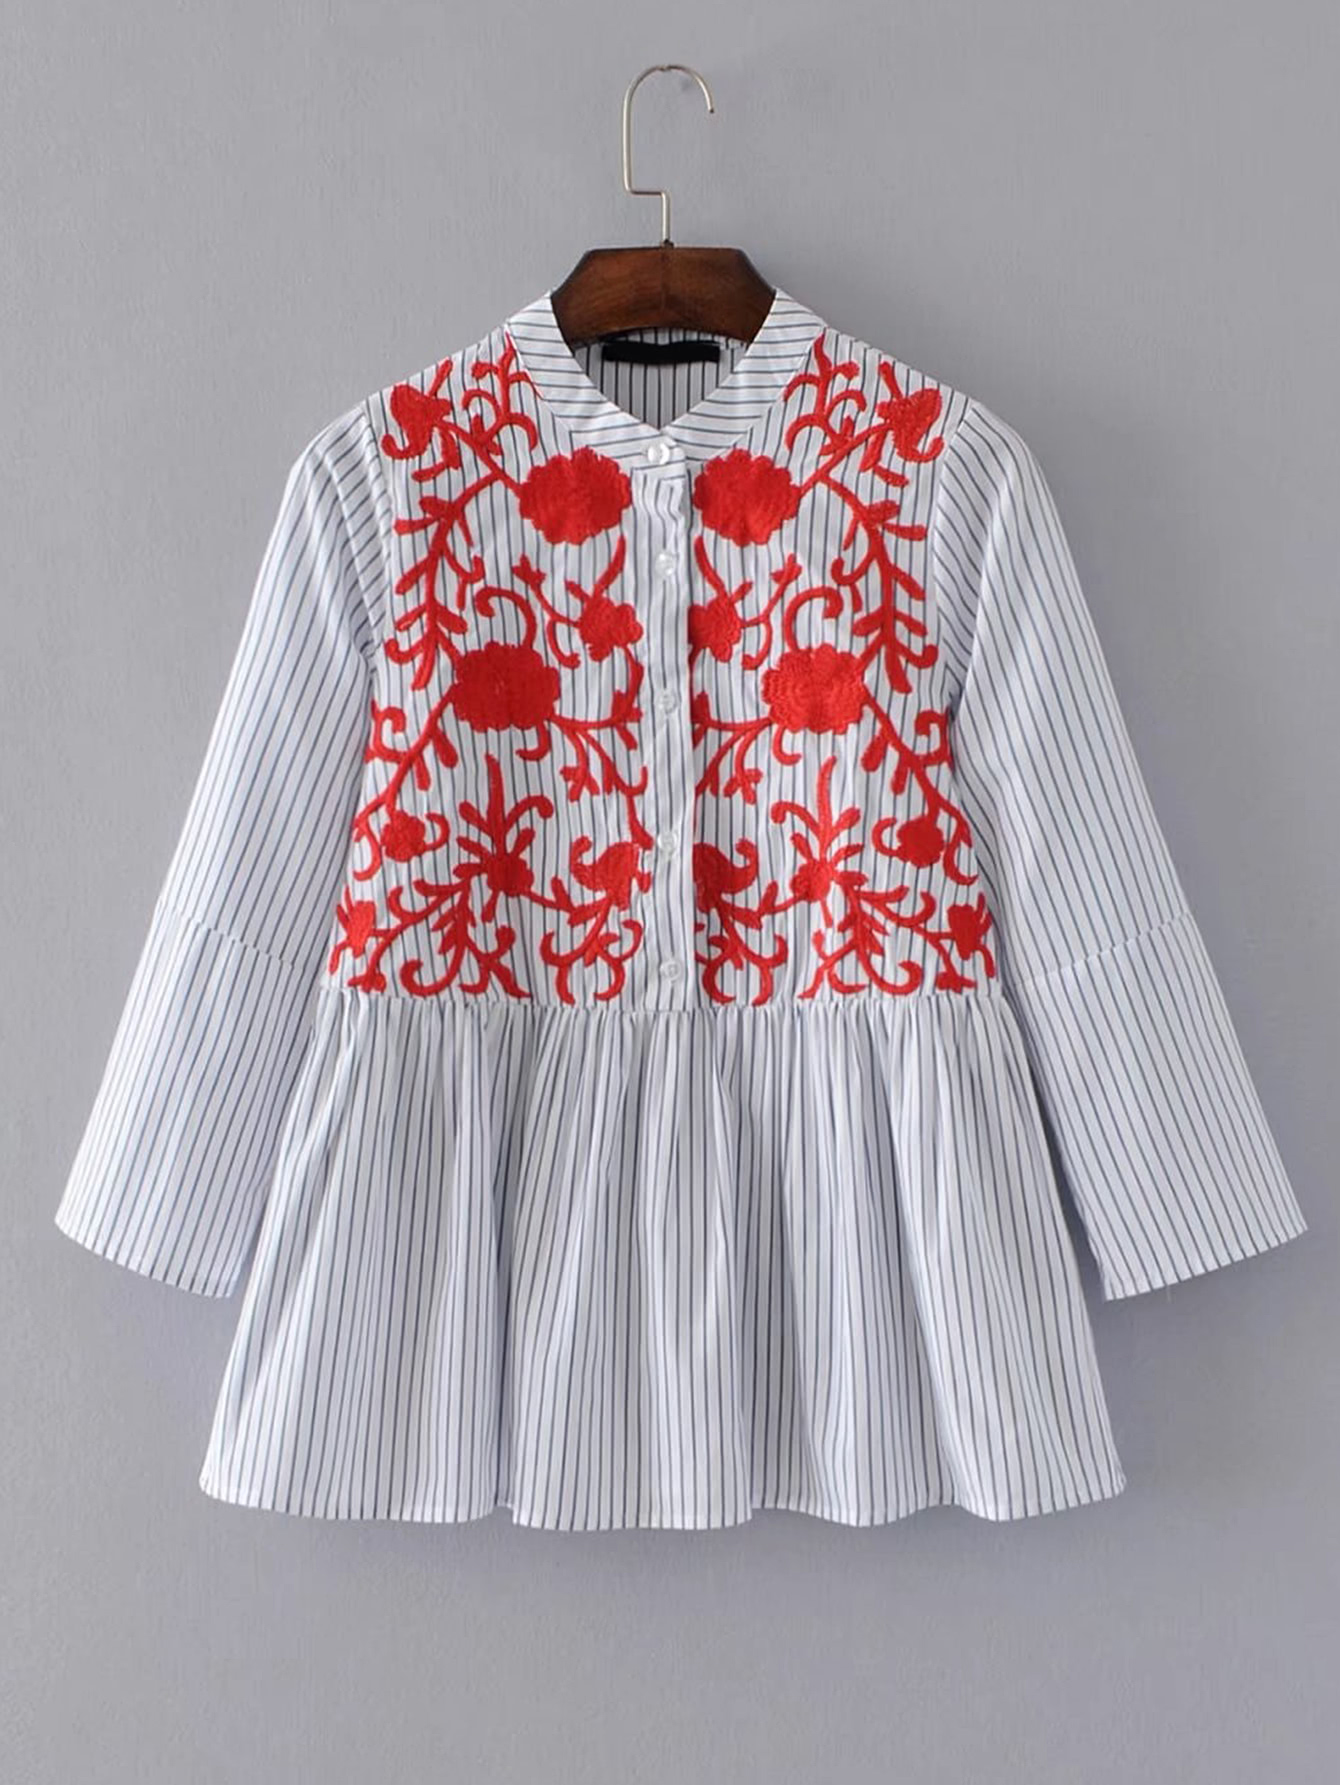 Band Collar Vertical Striped Embroidery Blouse